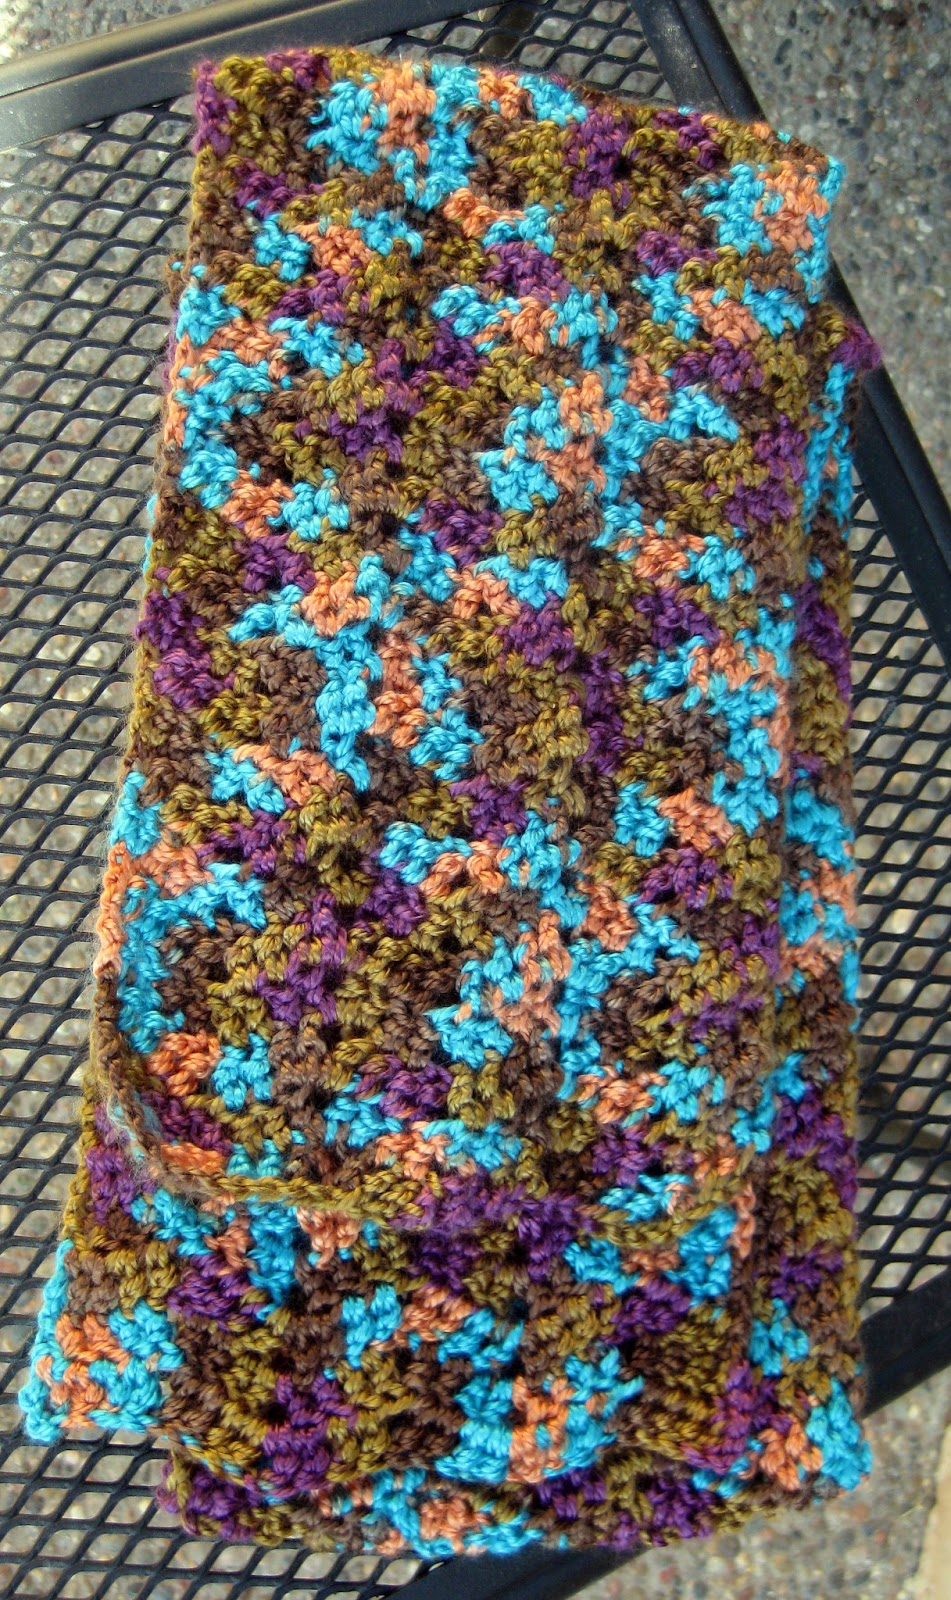 Crochet Scarf Pattern Variegated Yarn : thistlebear: Another chevron scarf...and a surprise